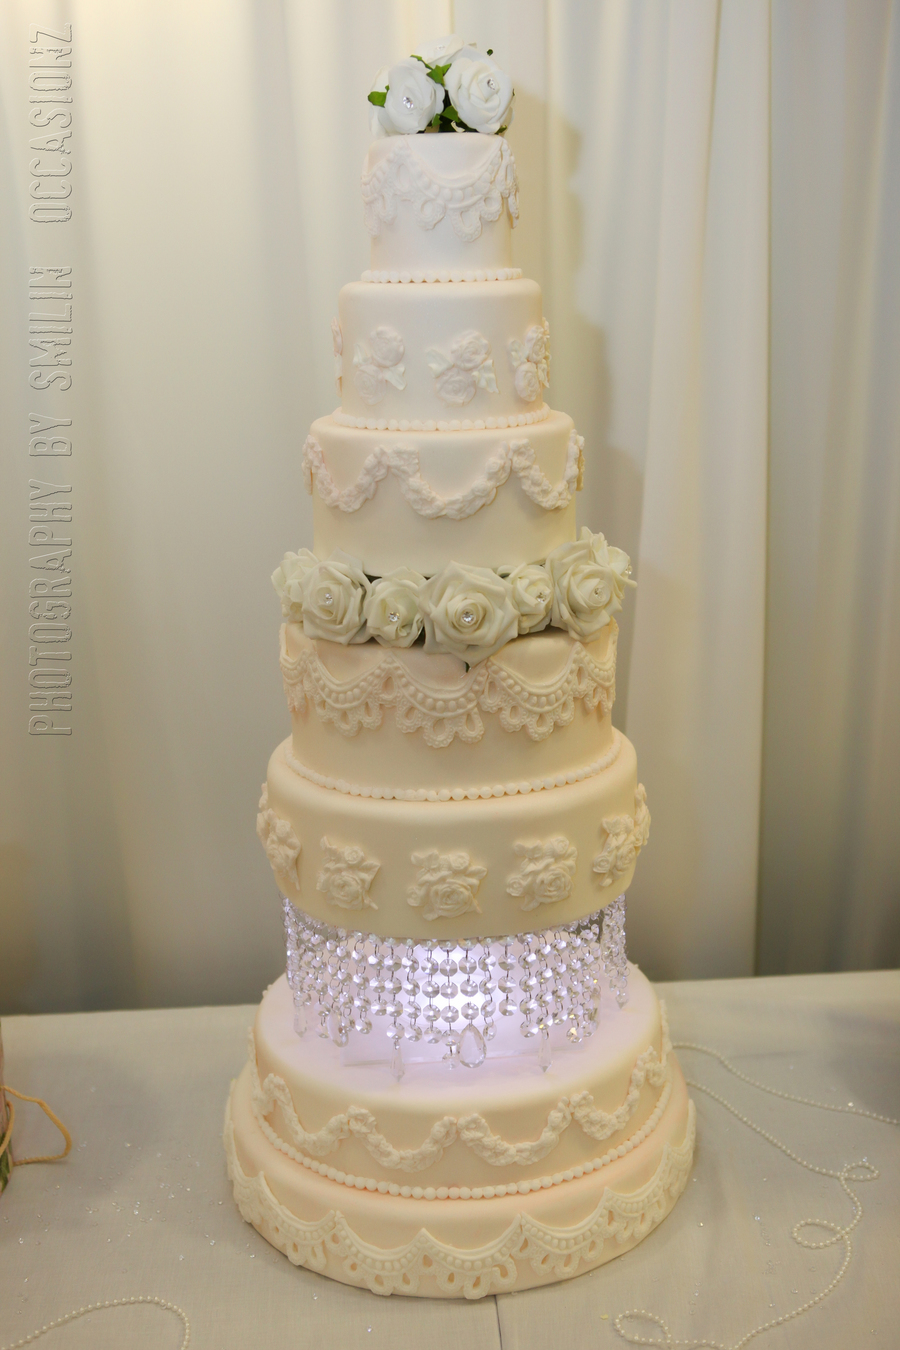 The Grand Wedding Cake on Cake Central